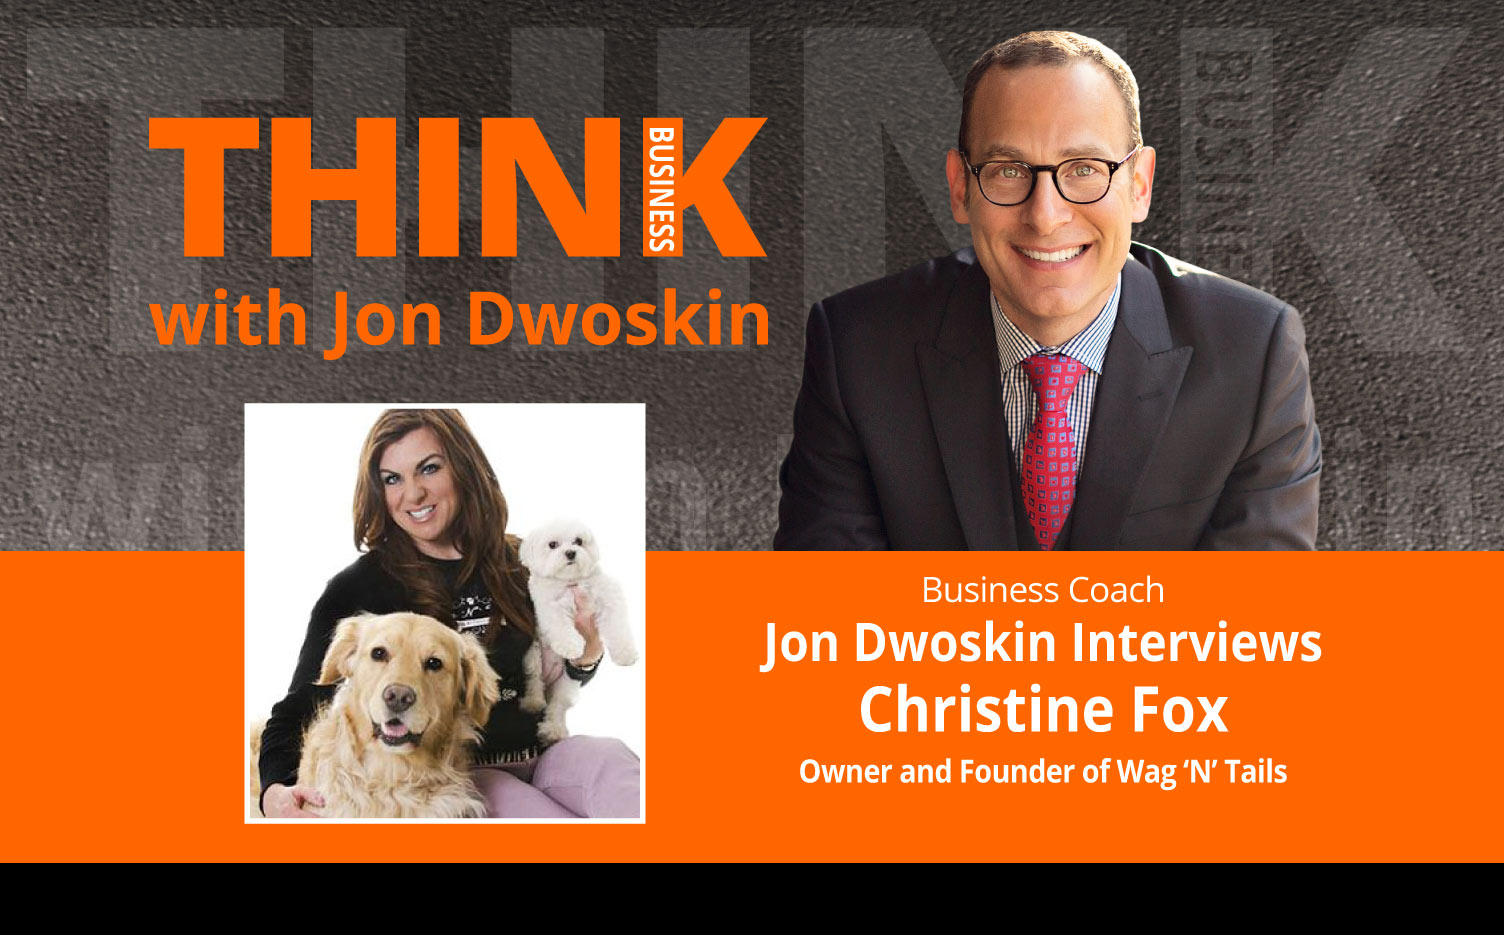 THINK Business Podcast: Jon Dwoskin Interviews Christine Fox, Owner and Founder of Wag 'N' Tails